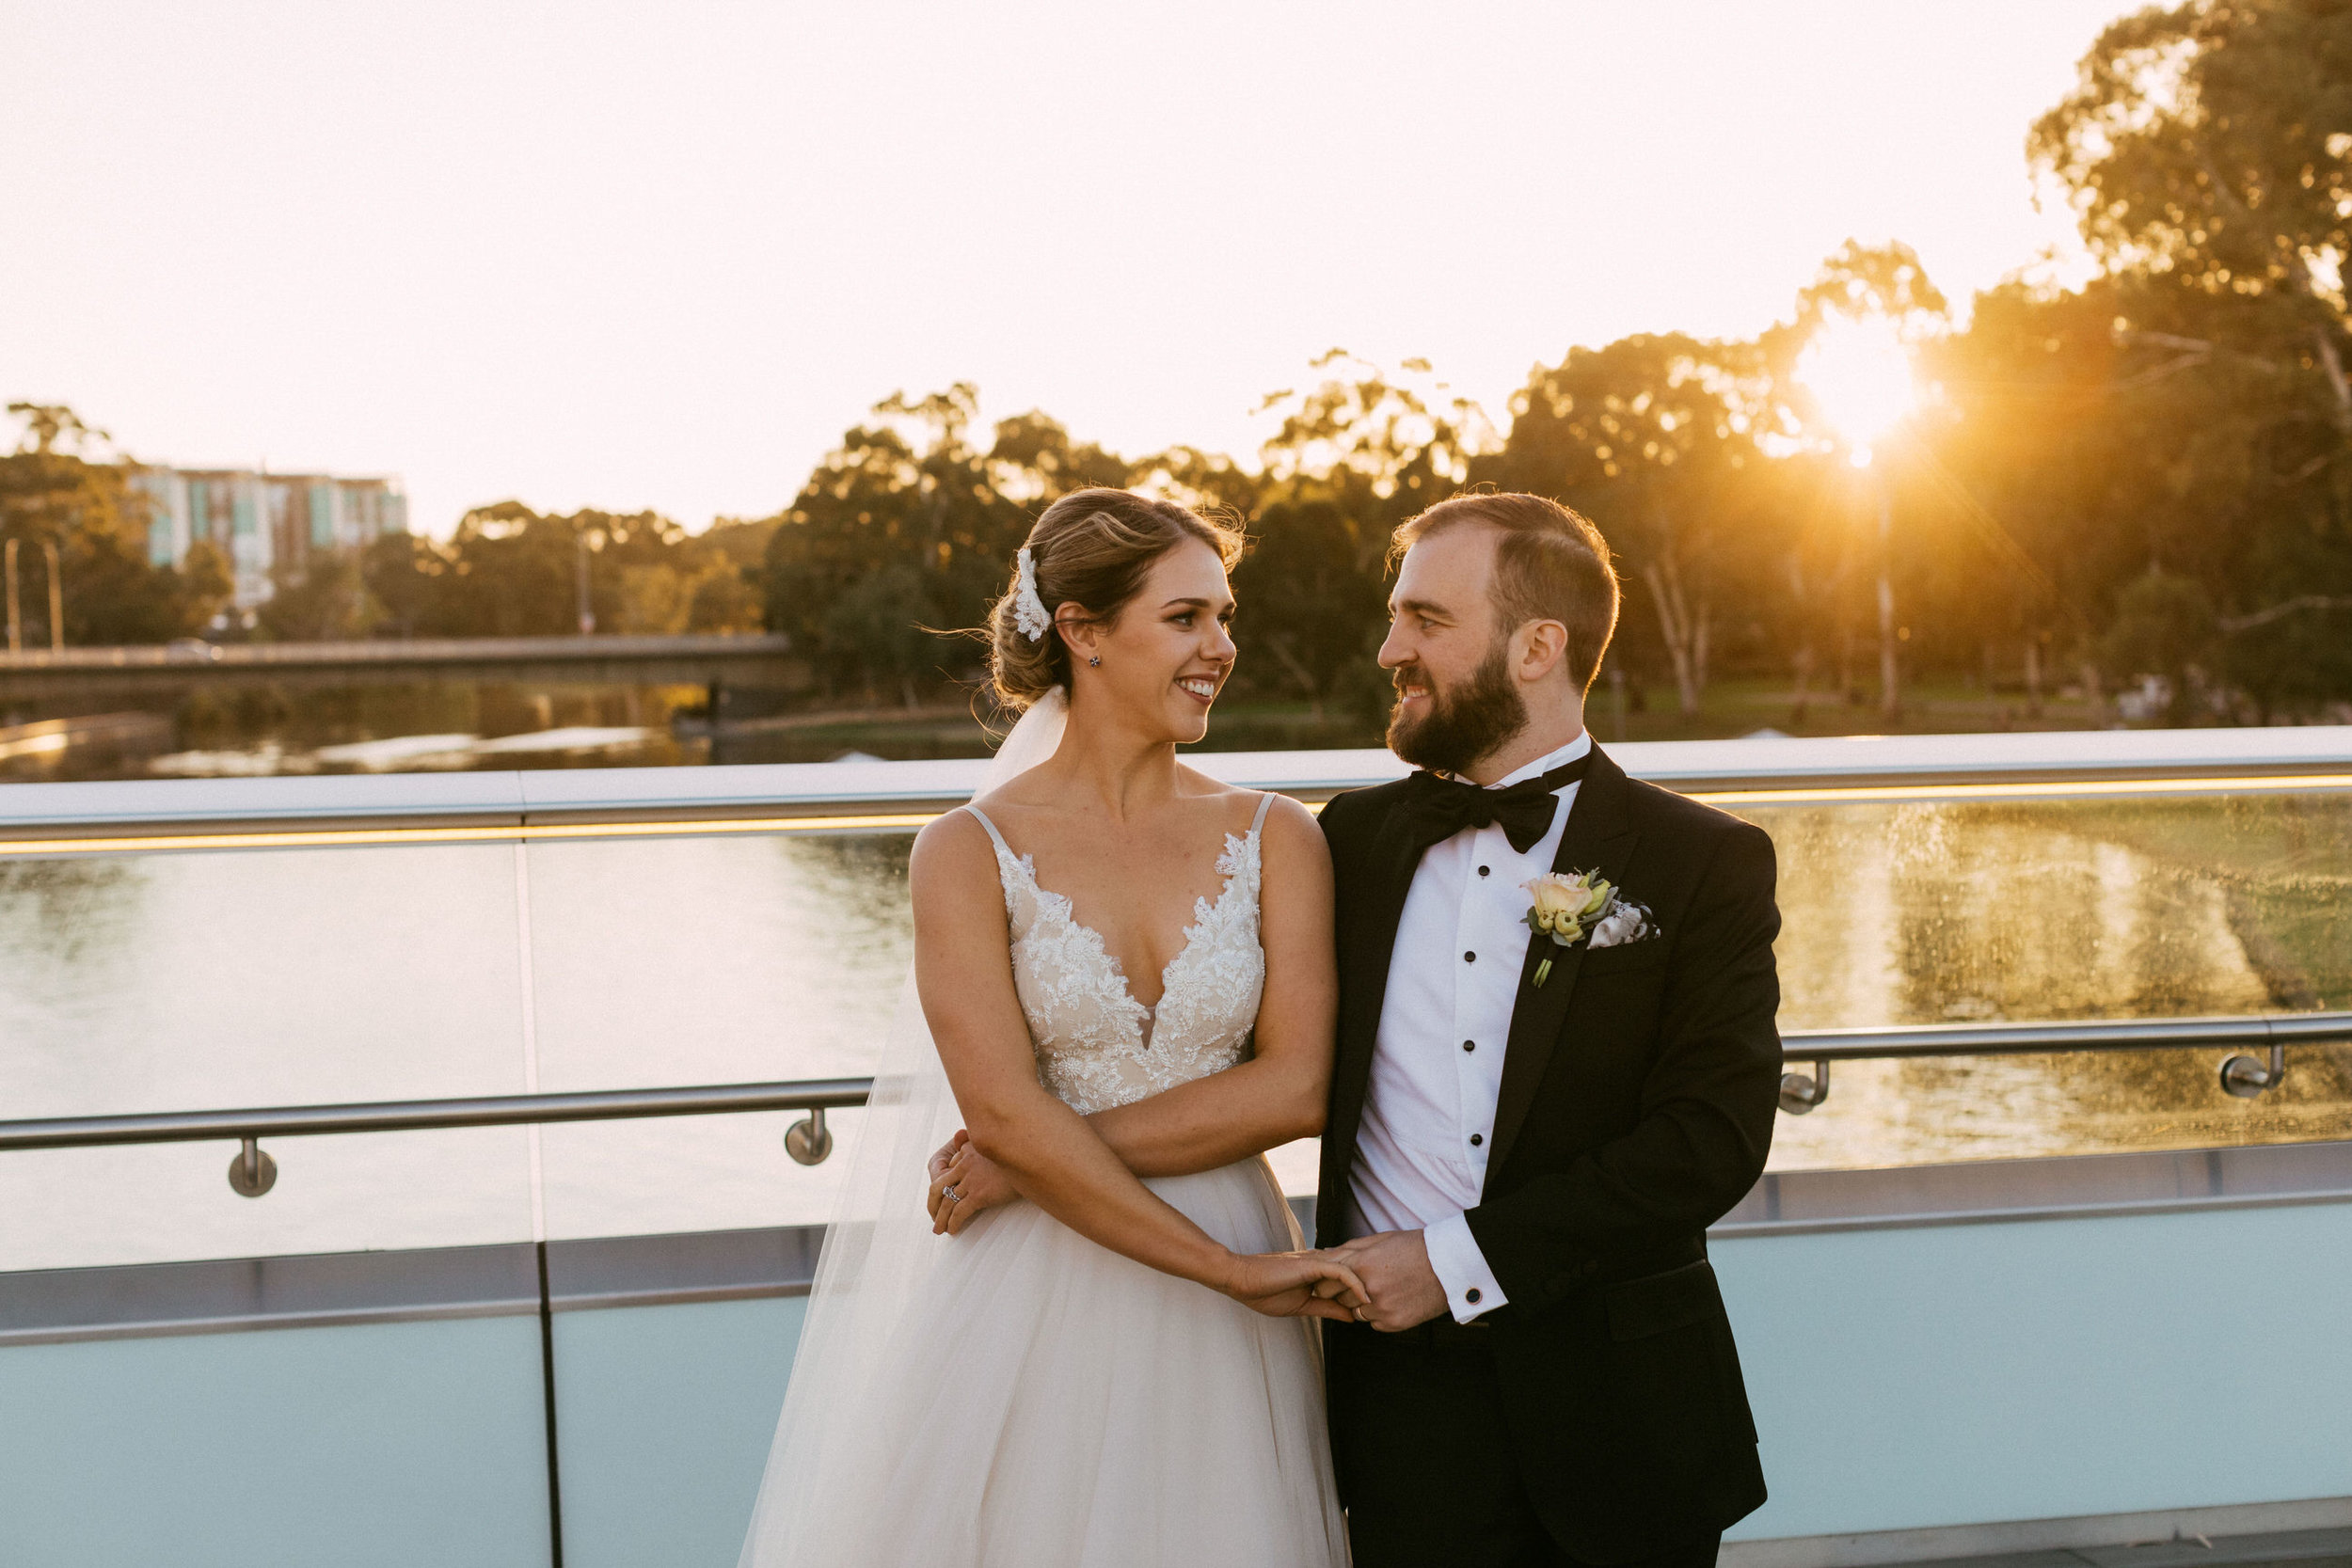 Adelaide Wedding 2019 120.jpg